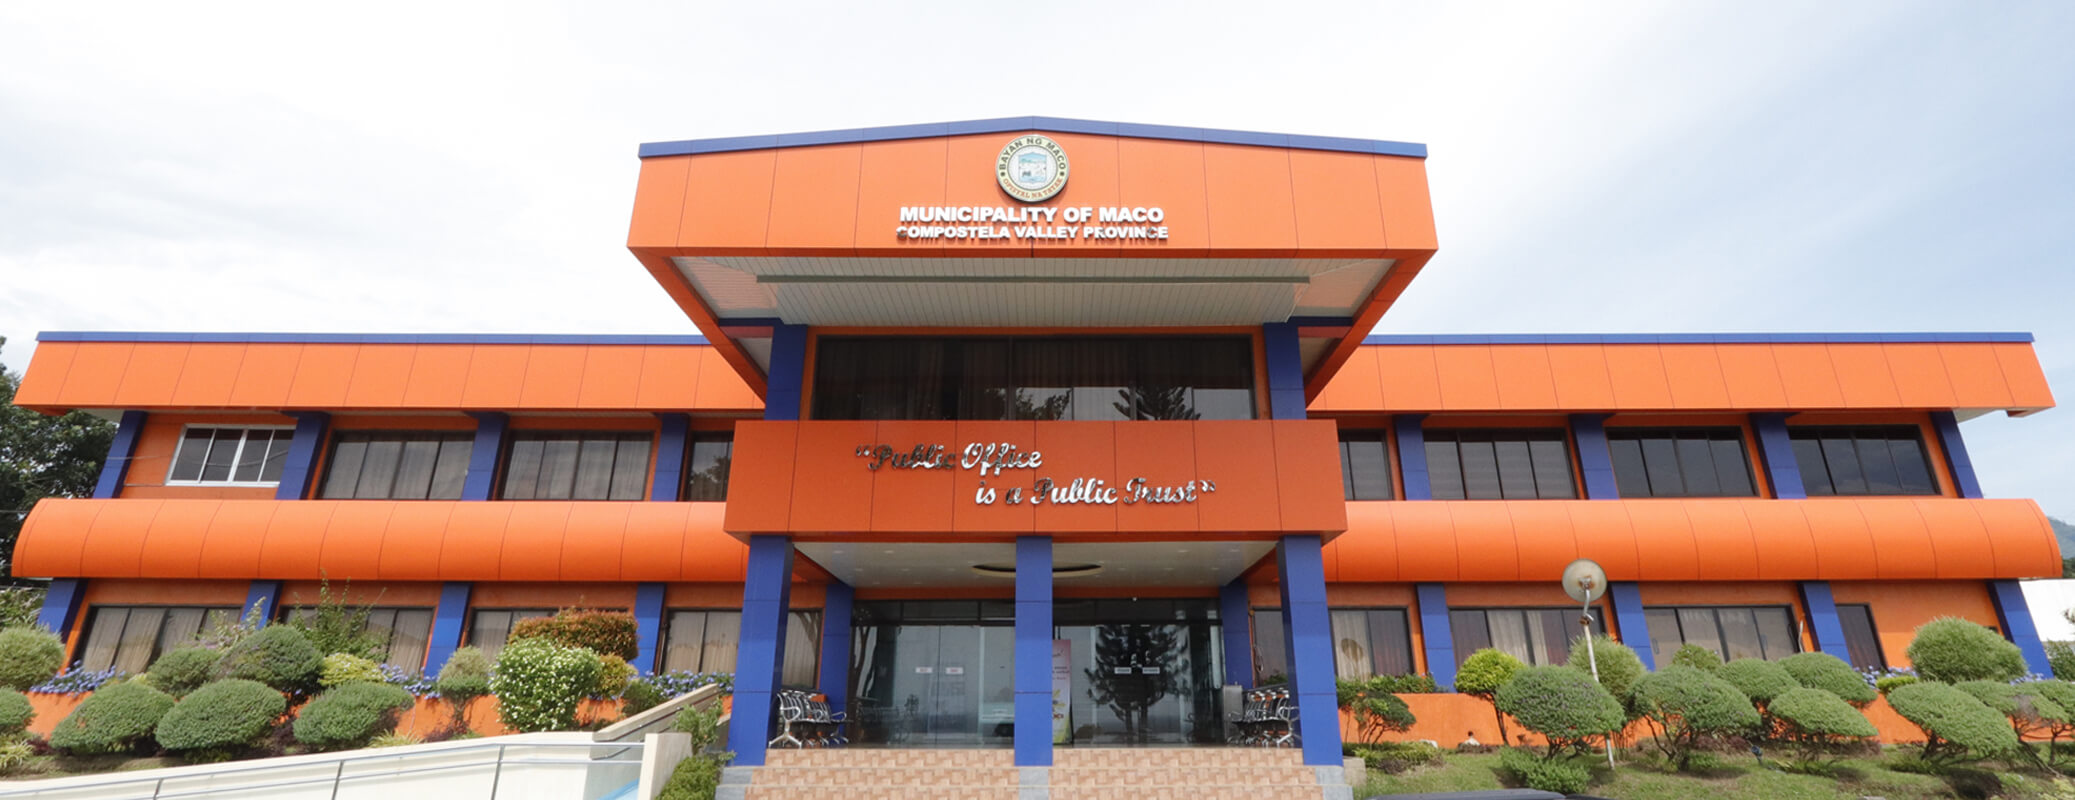 New Municipal Building of Maco